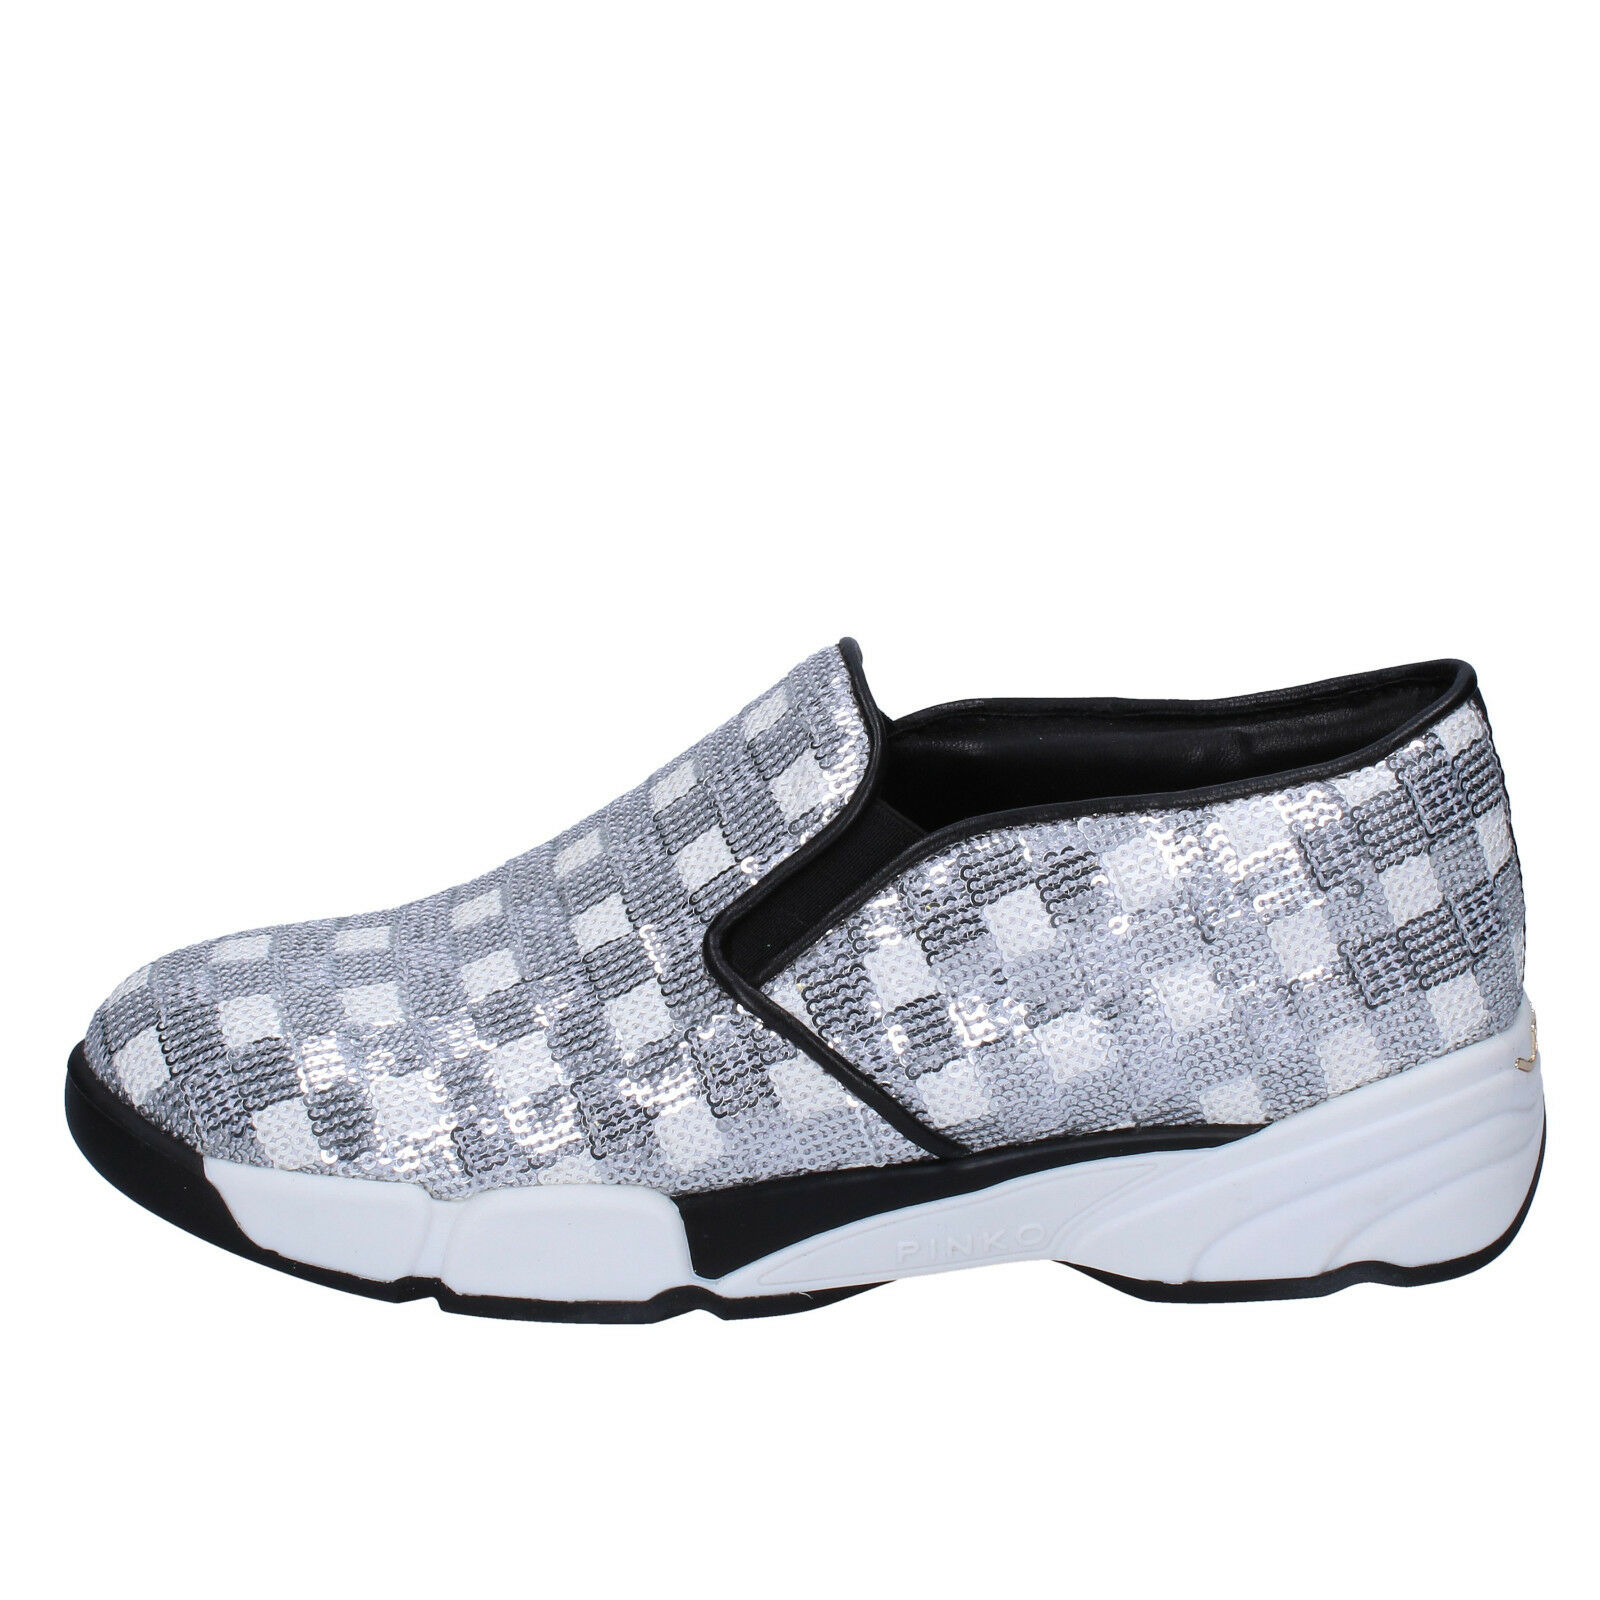 women's shoes PINKO 6 () slip on white silver paillettes BT251-36